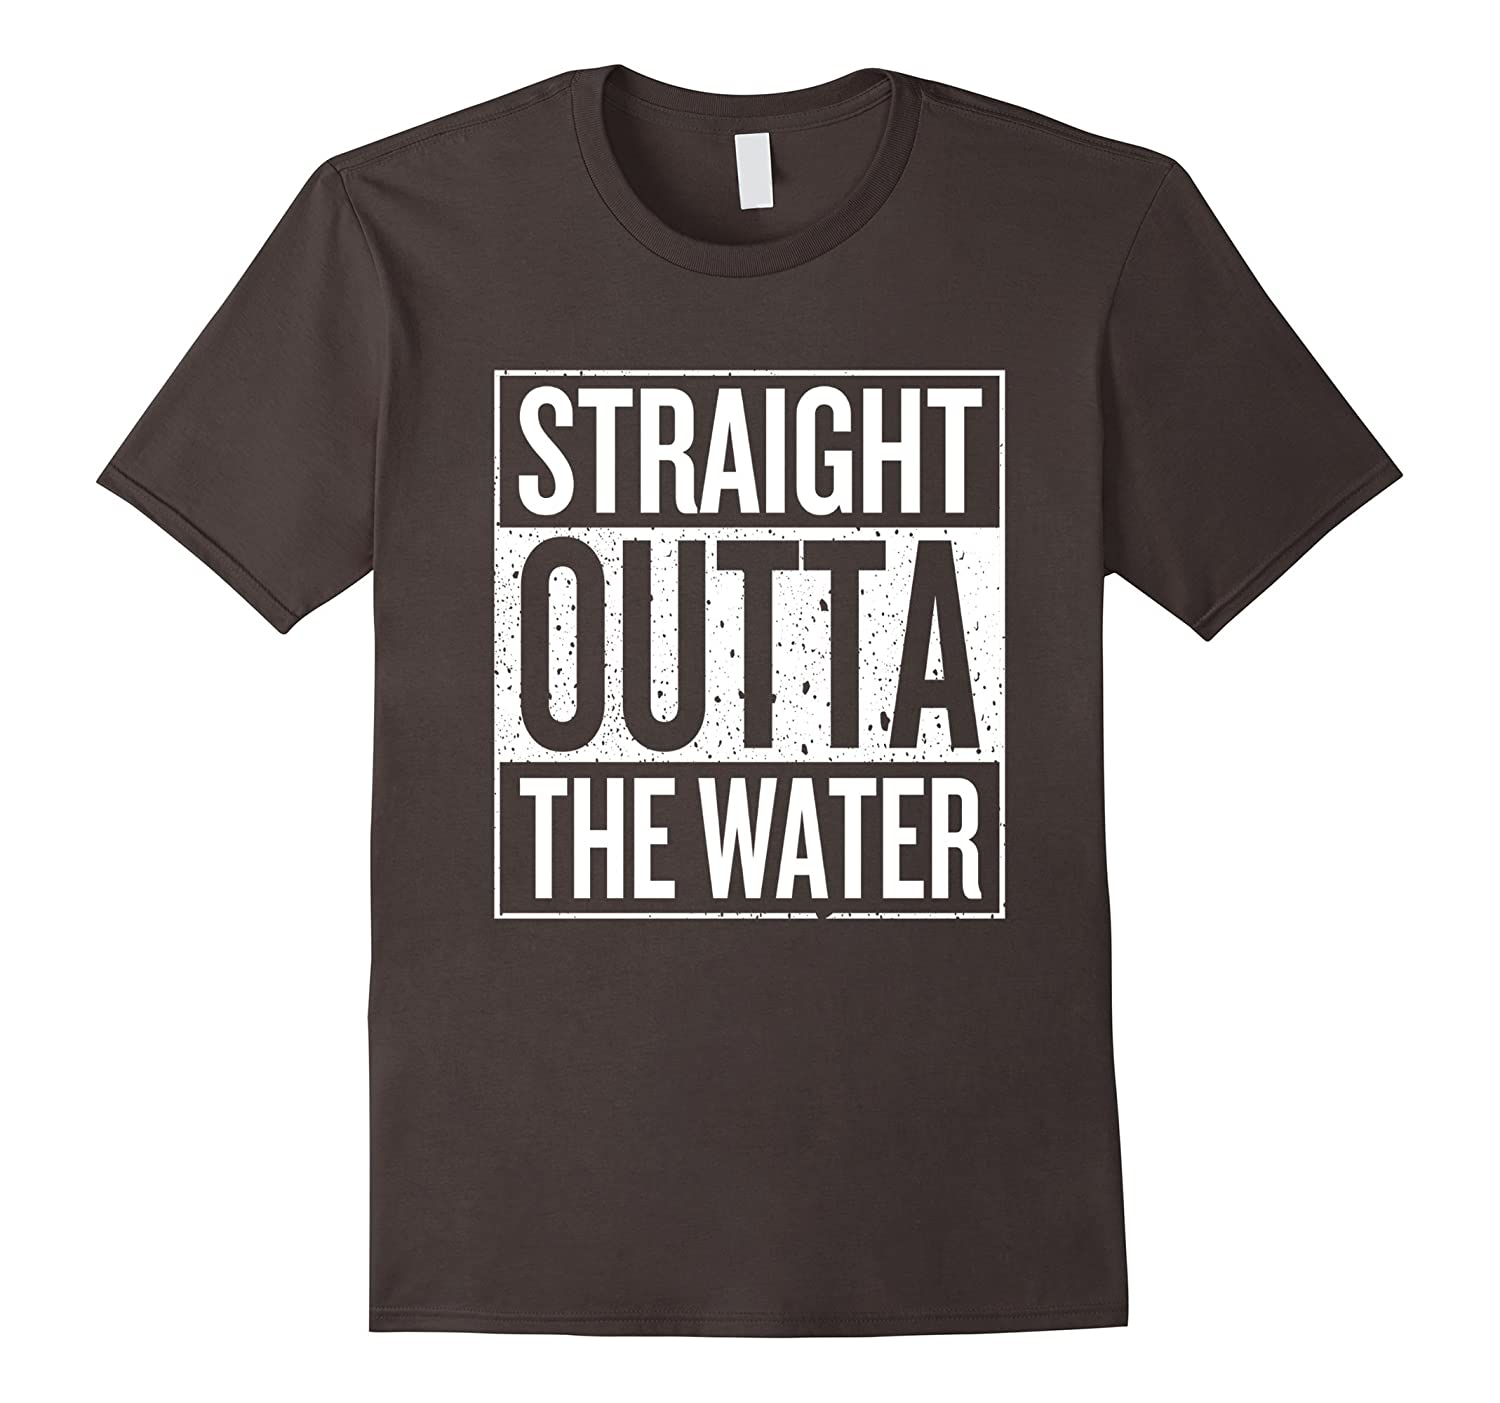 Straight outta the water funny t shirt goatstee for Straight from the go shirt